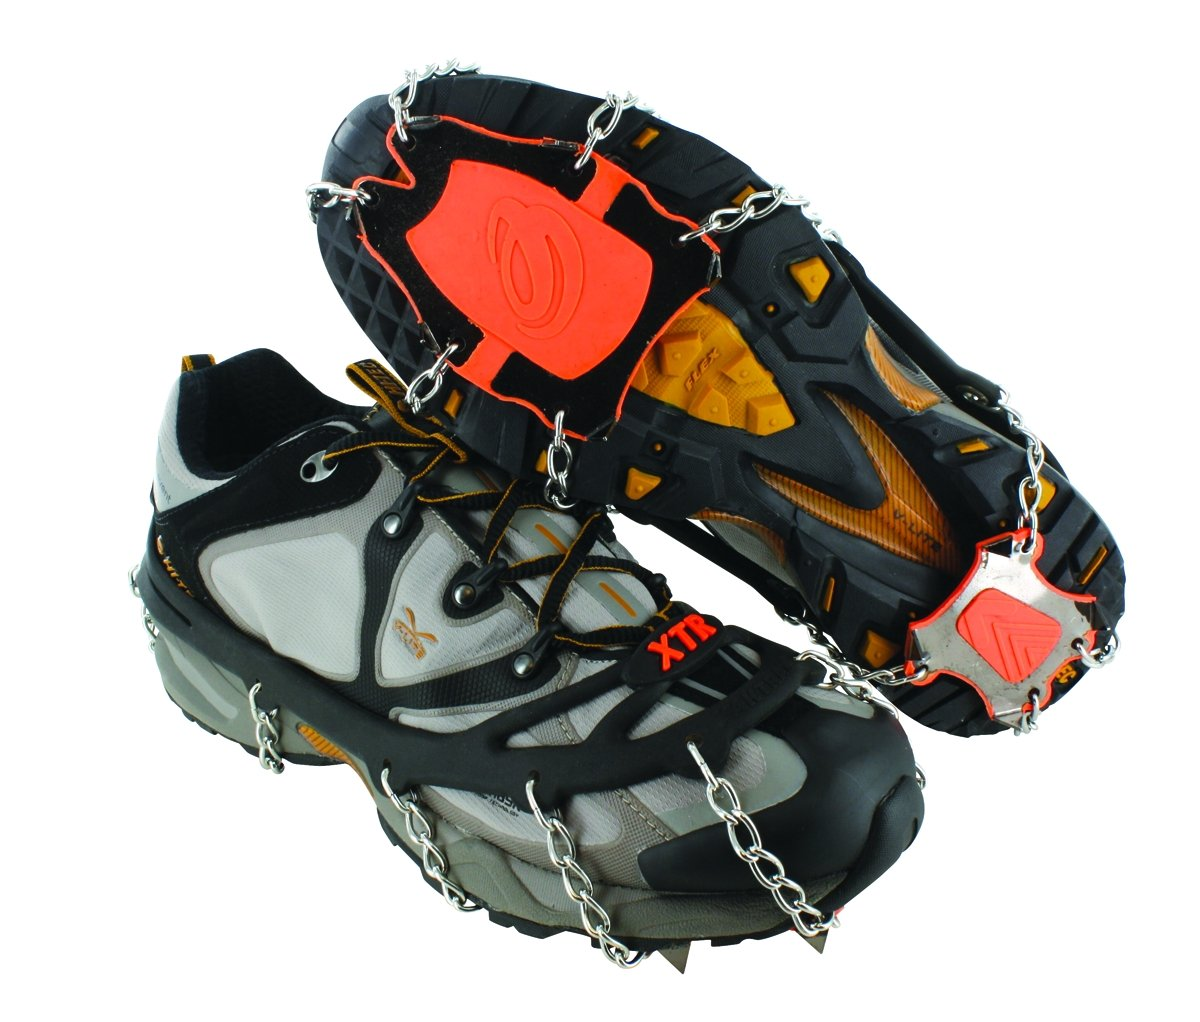 Yaktrax XTR Extreme Outdoor Traction Cleats for Snow and Ice (1 Pair), Black/Orange, Small by Yaktrax